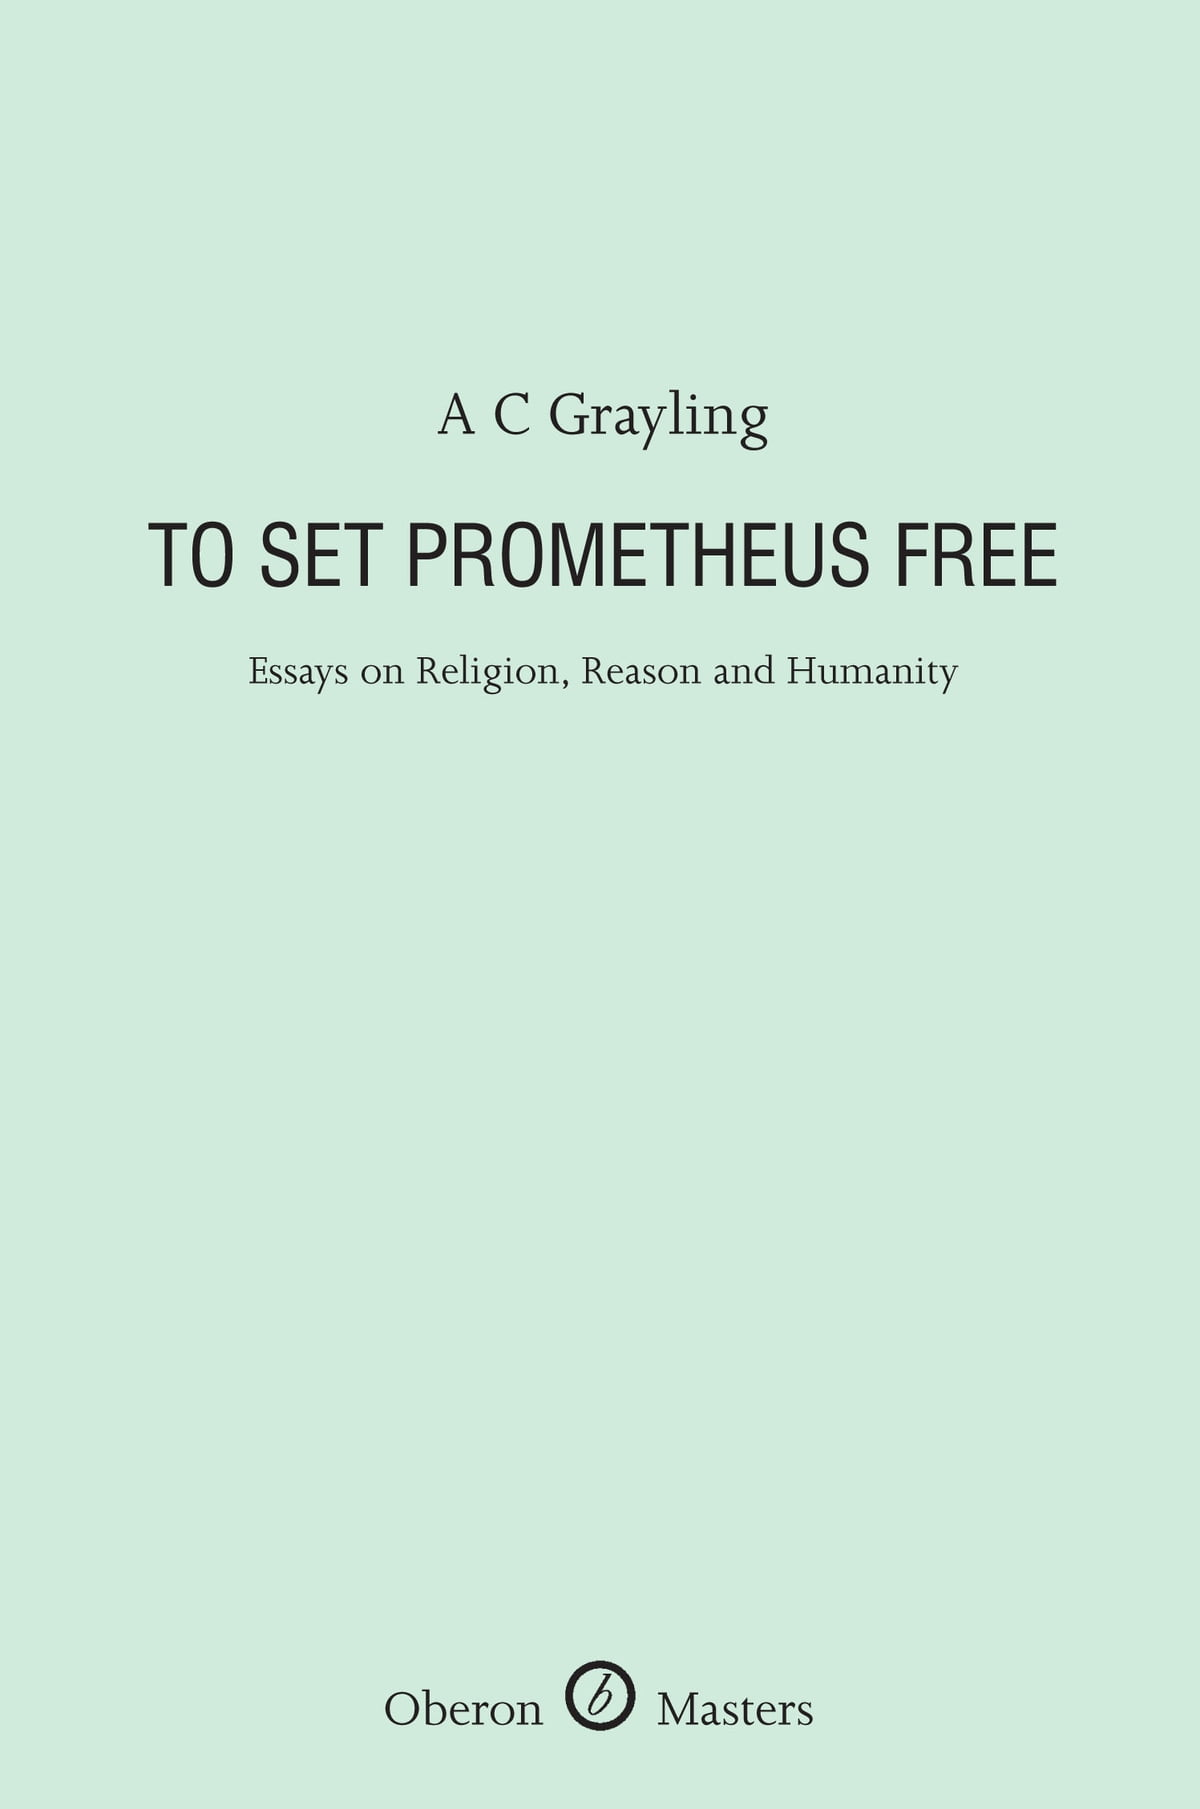 Essay About English Class To Set Prometheus Free Essays On Religion Reason And Humanity Ebook By  Ac Grayling    Rakuten Kobo How To Write A Essay For High School also Healthy Living Essay To Set Prometheus Free Essays On Religion Reason And Humanity  Essay Topics For High School English